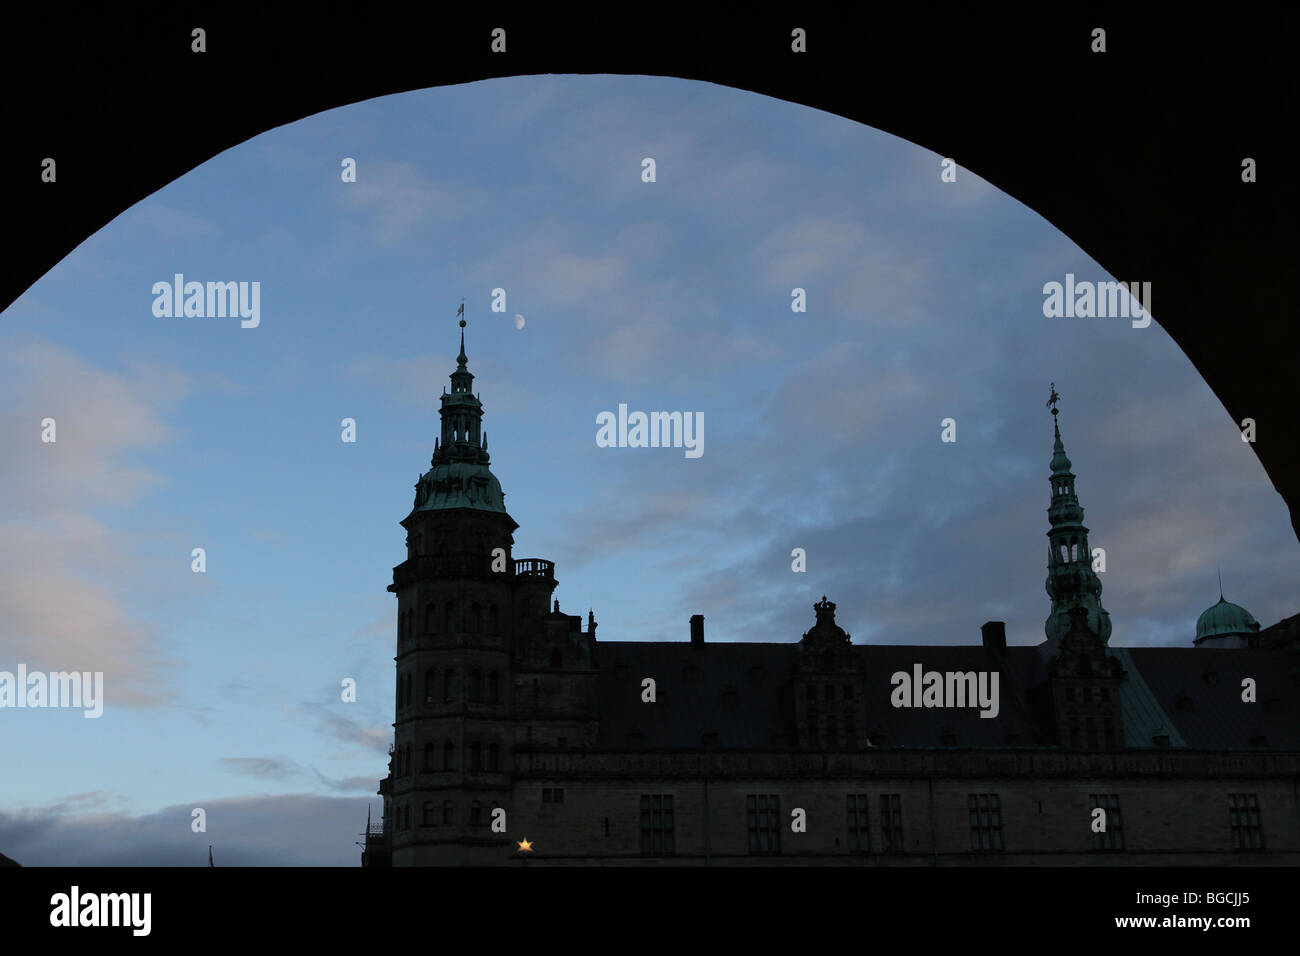 Silhouette of the Kronborg Castle in Helsingør (in English also known as Elsinore) on the island of Zealand - Stock Image